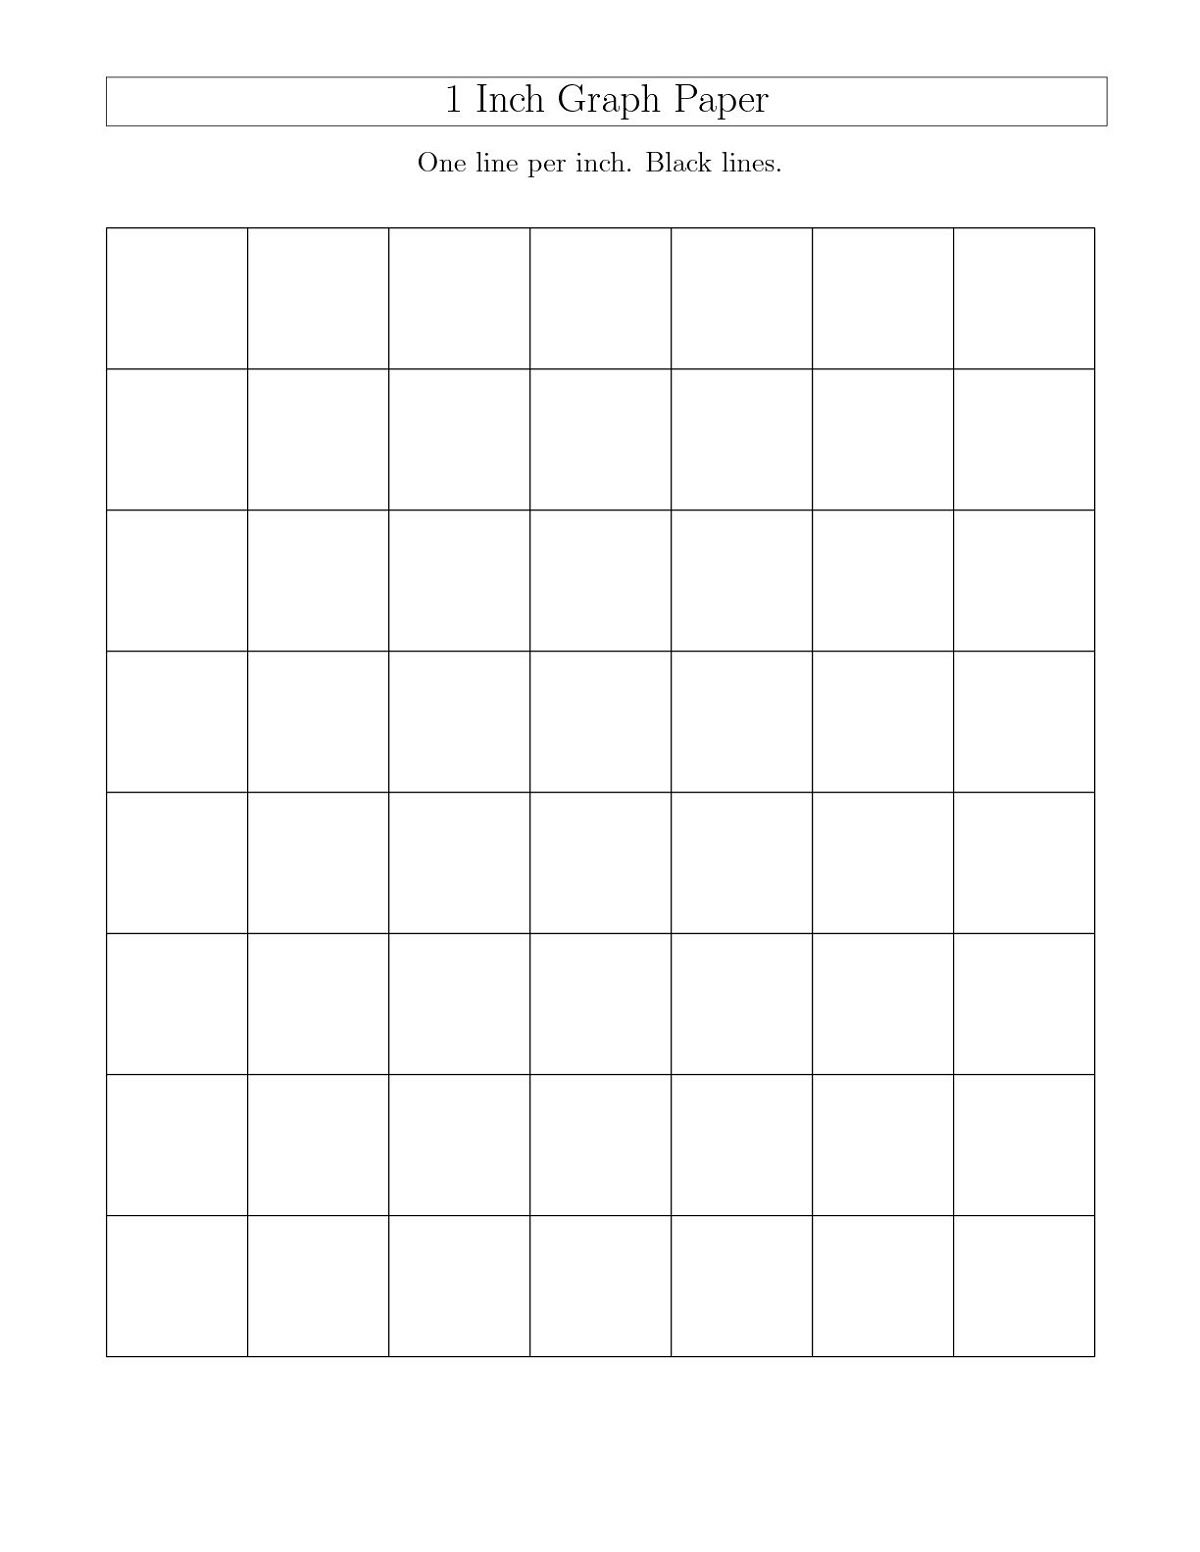 Free Printable Children's Book Template Graph Paper